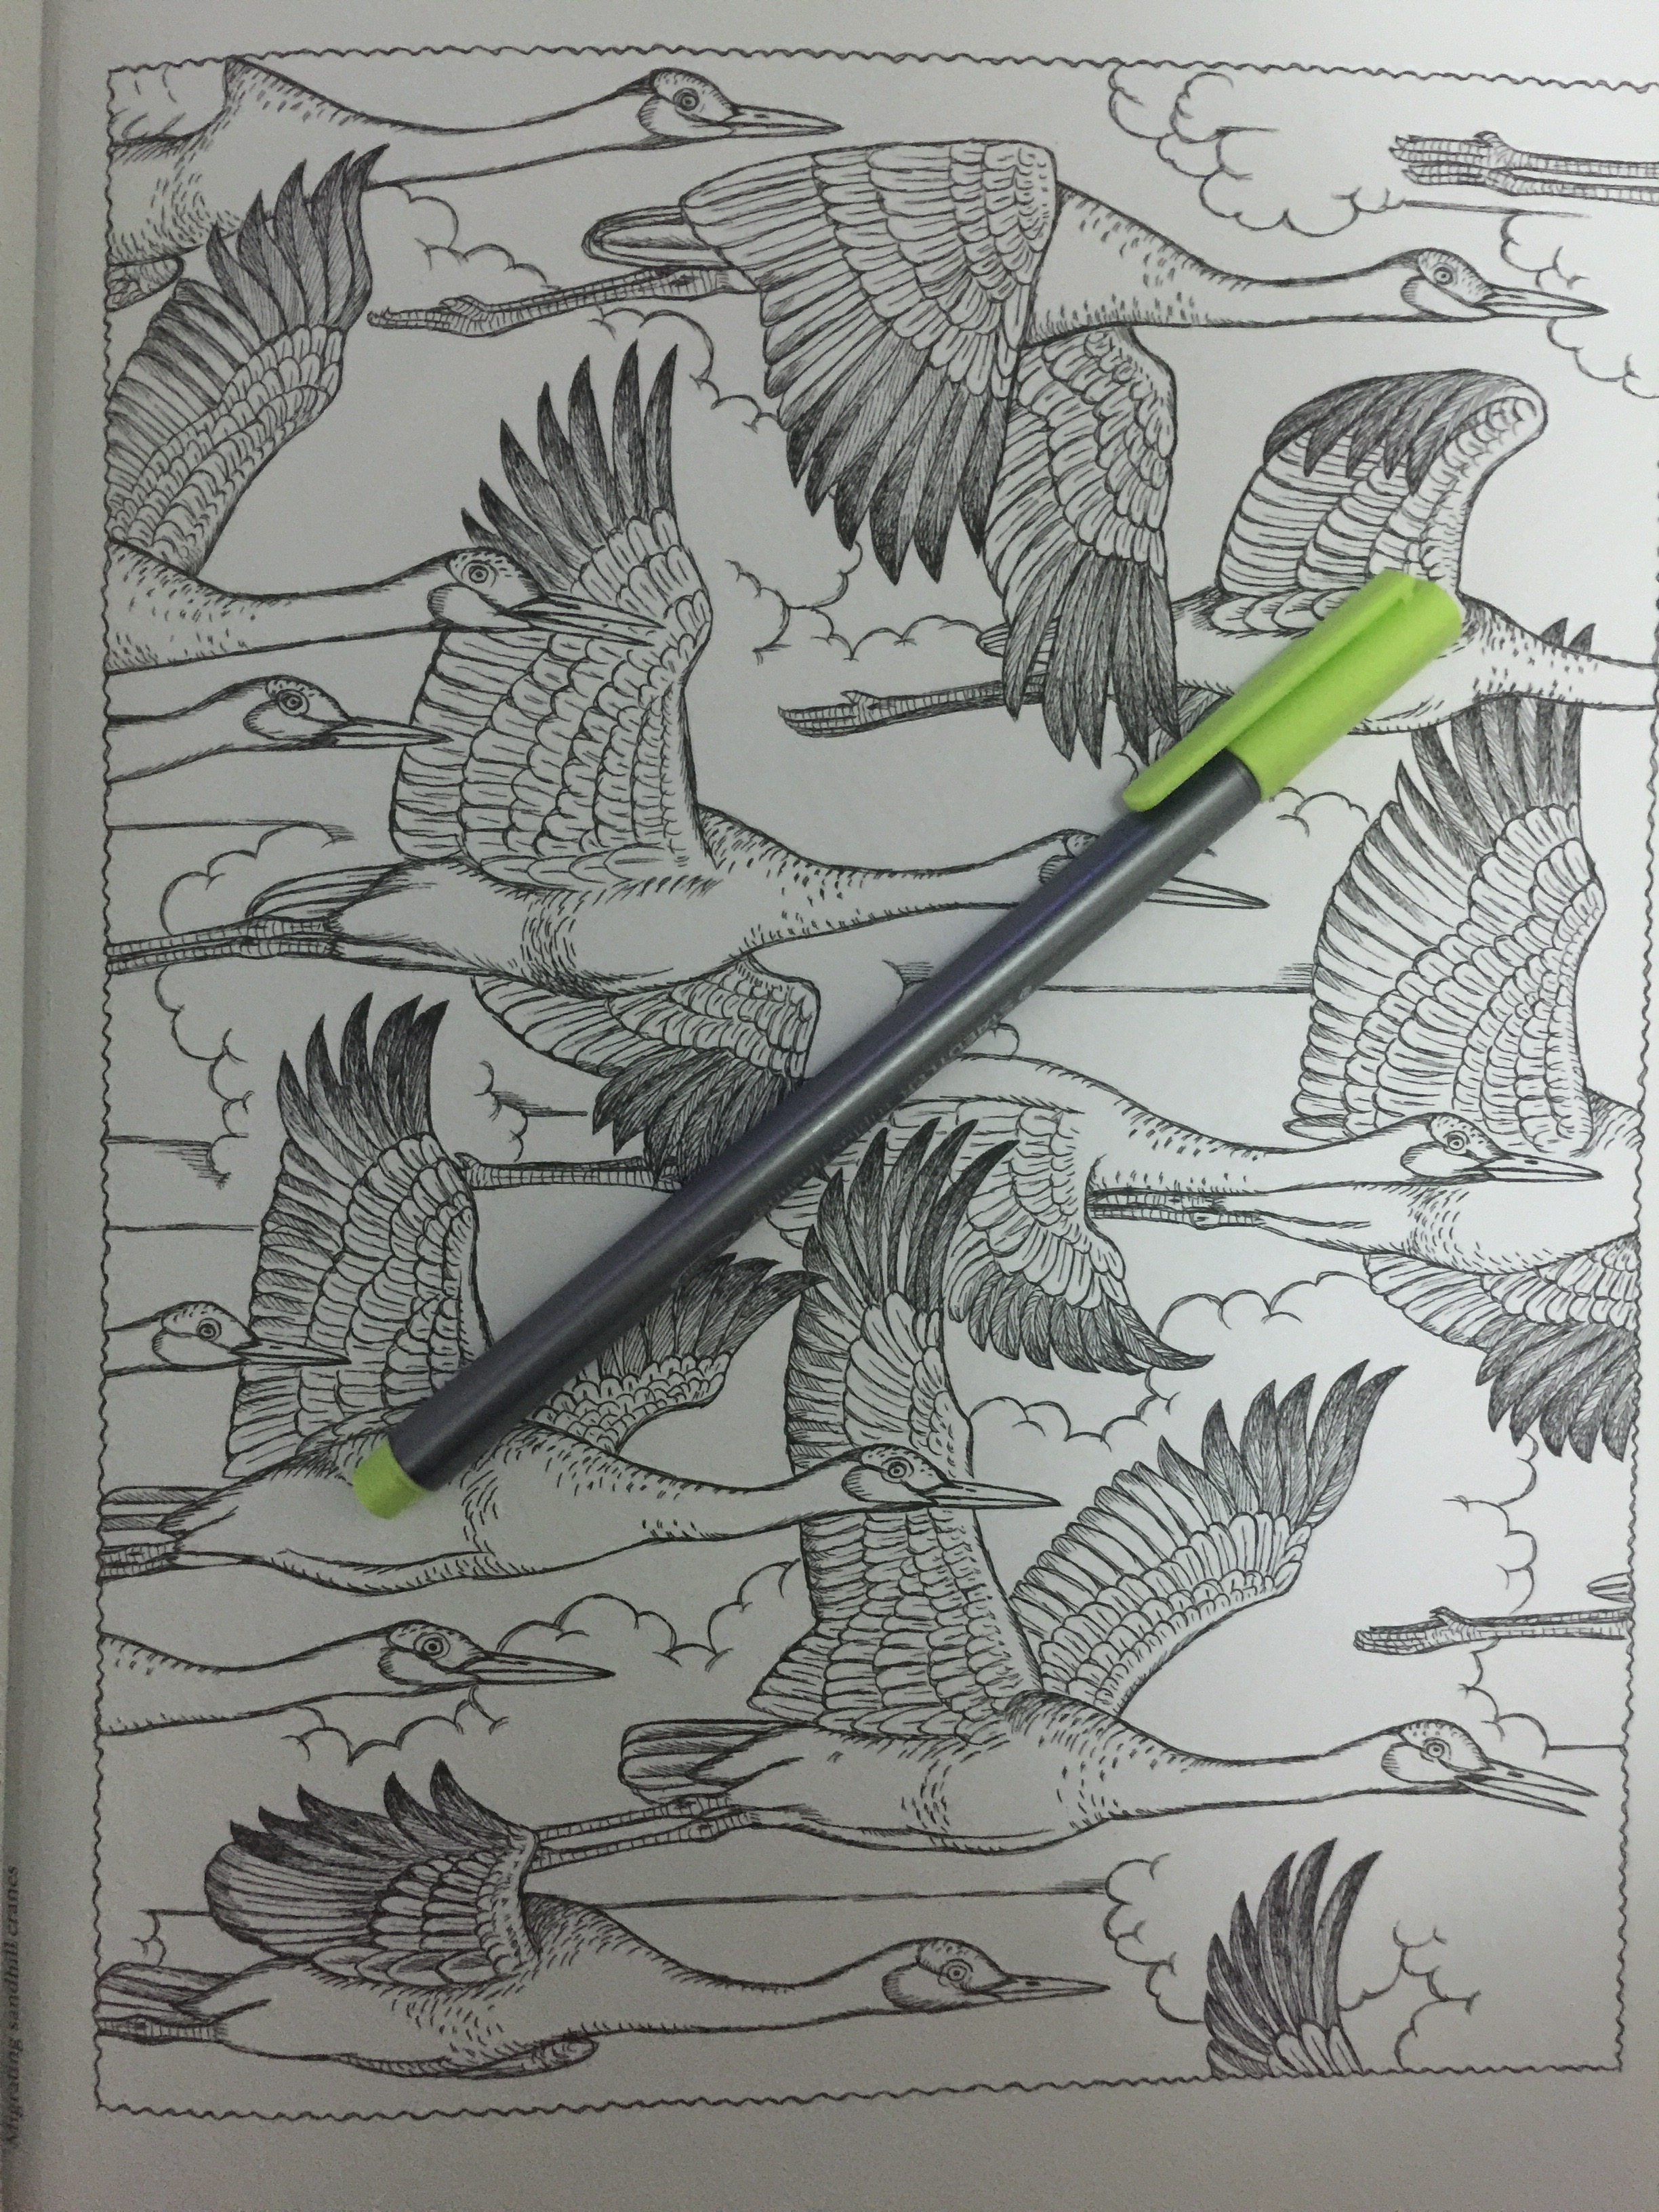 Adult coloring book reviews completed colour colouring pencils pens book art relief books stress relief  creative haven dover naturescapes animal coloring